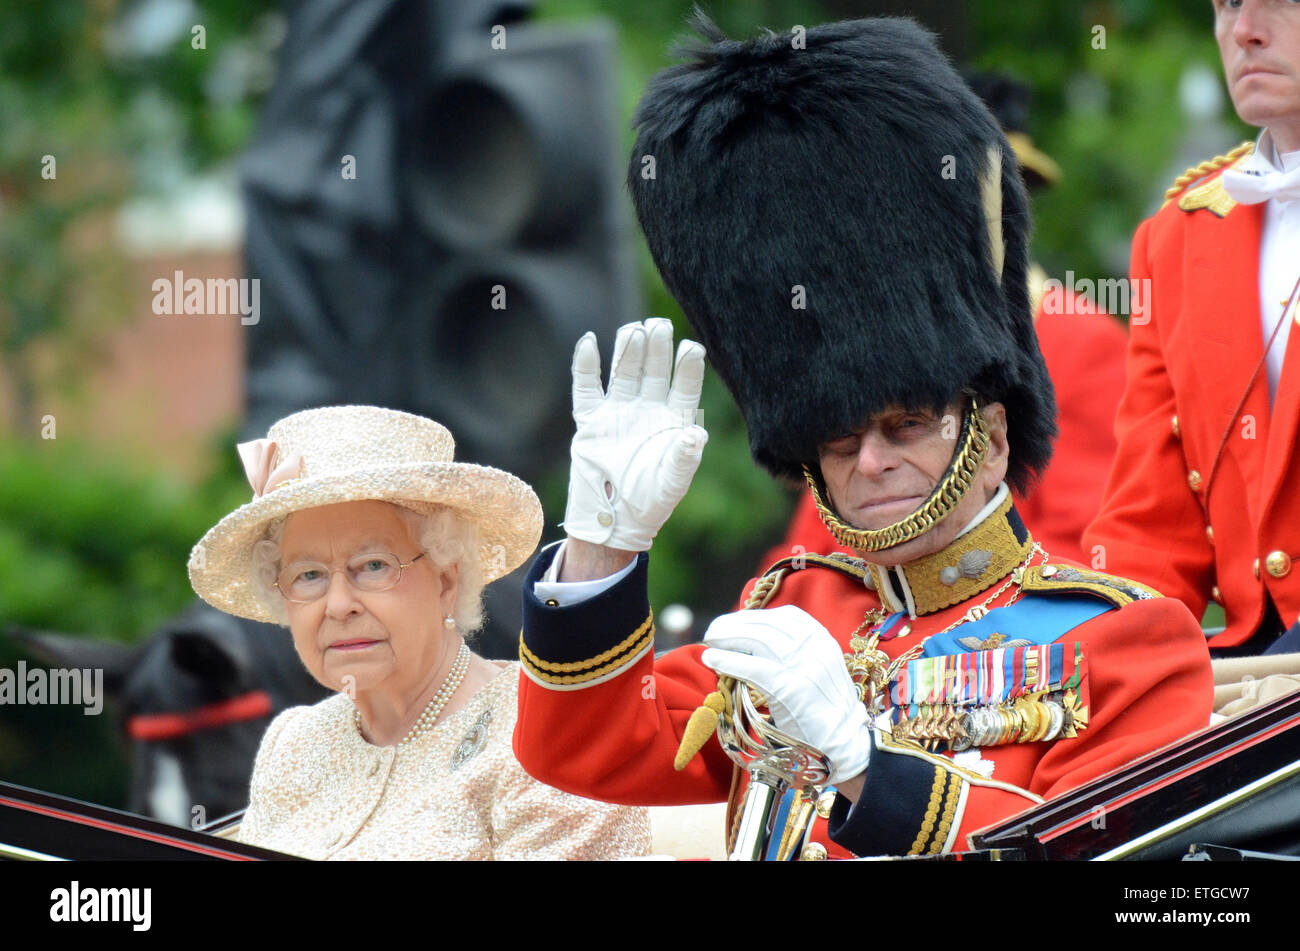 Queen and Prince Philip. Trooping of the Colour in The Mall. London - Stock Image